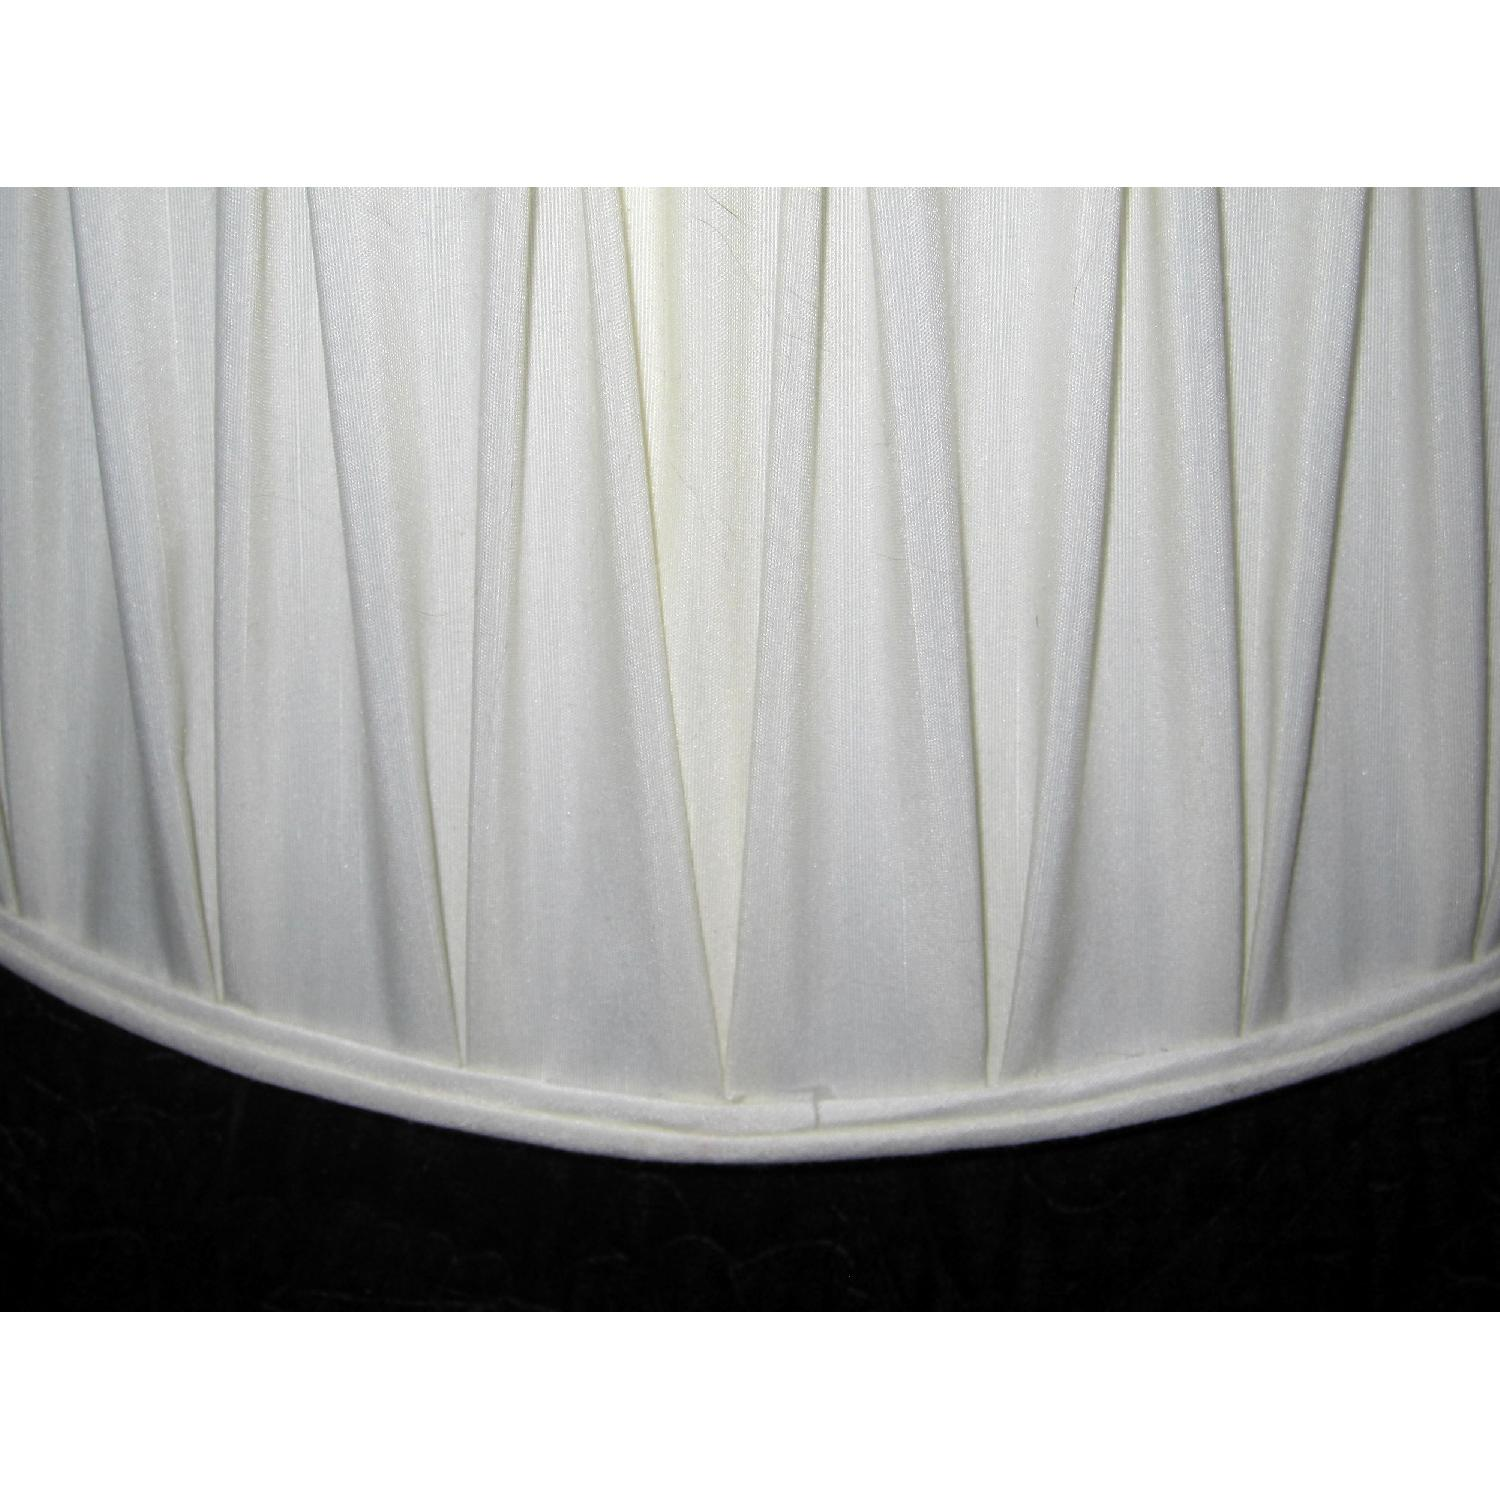 Ivory Silk-Lined Silk Pleated Lamp Shades - image-7